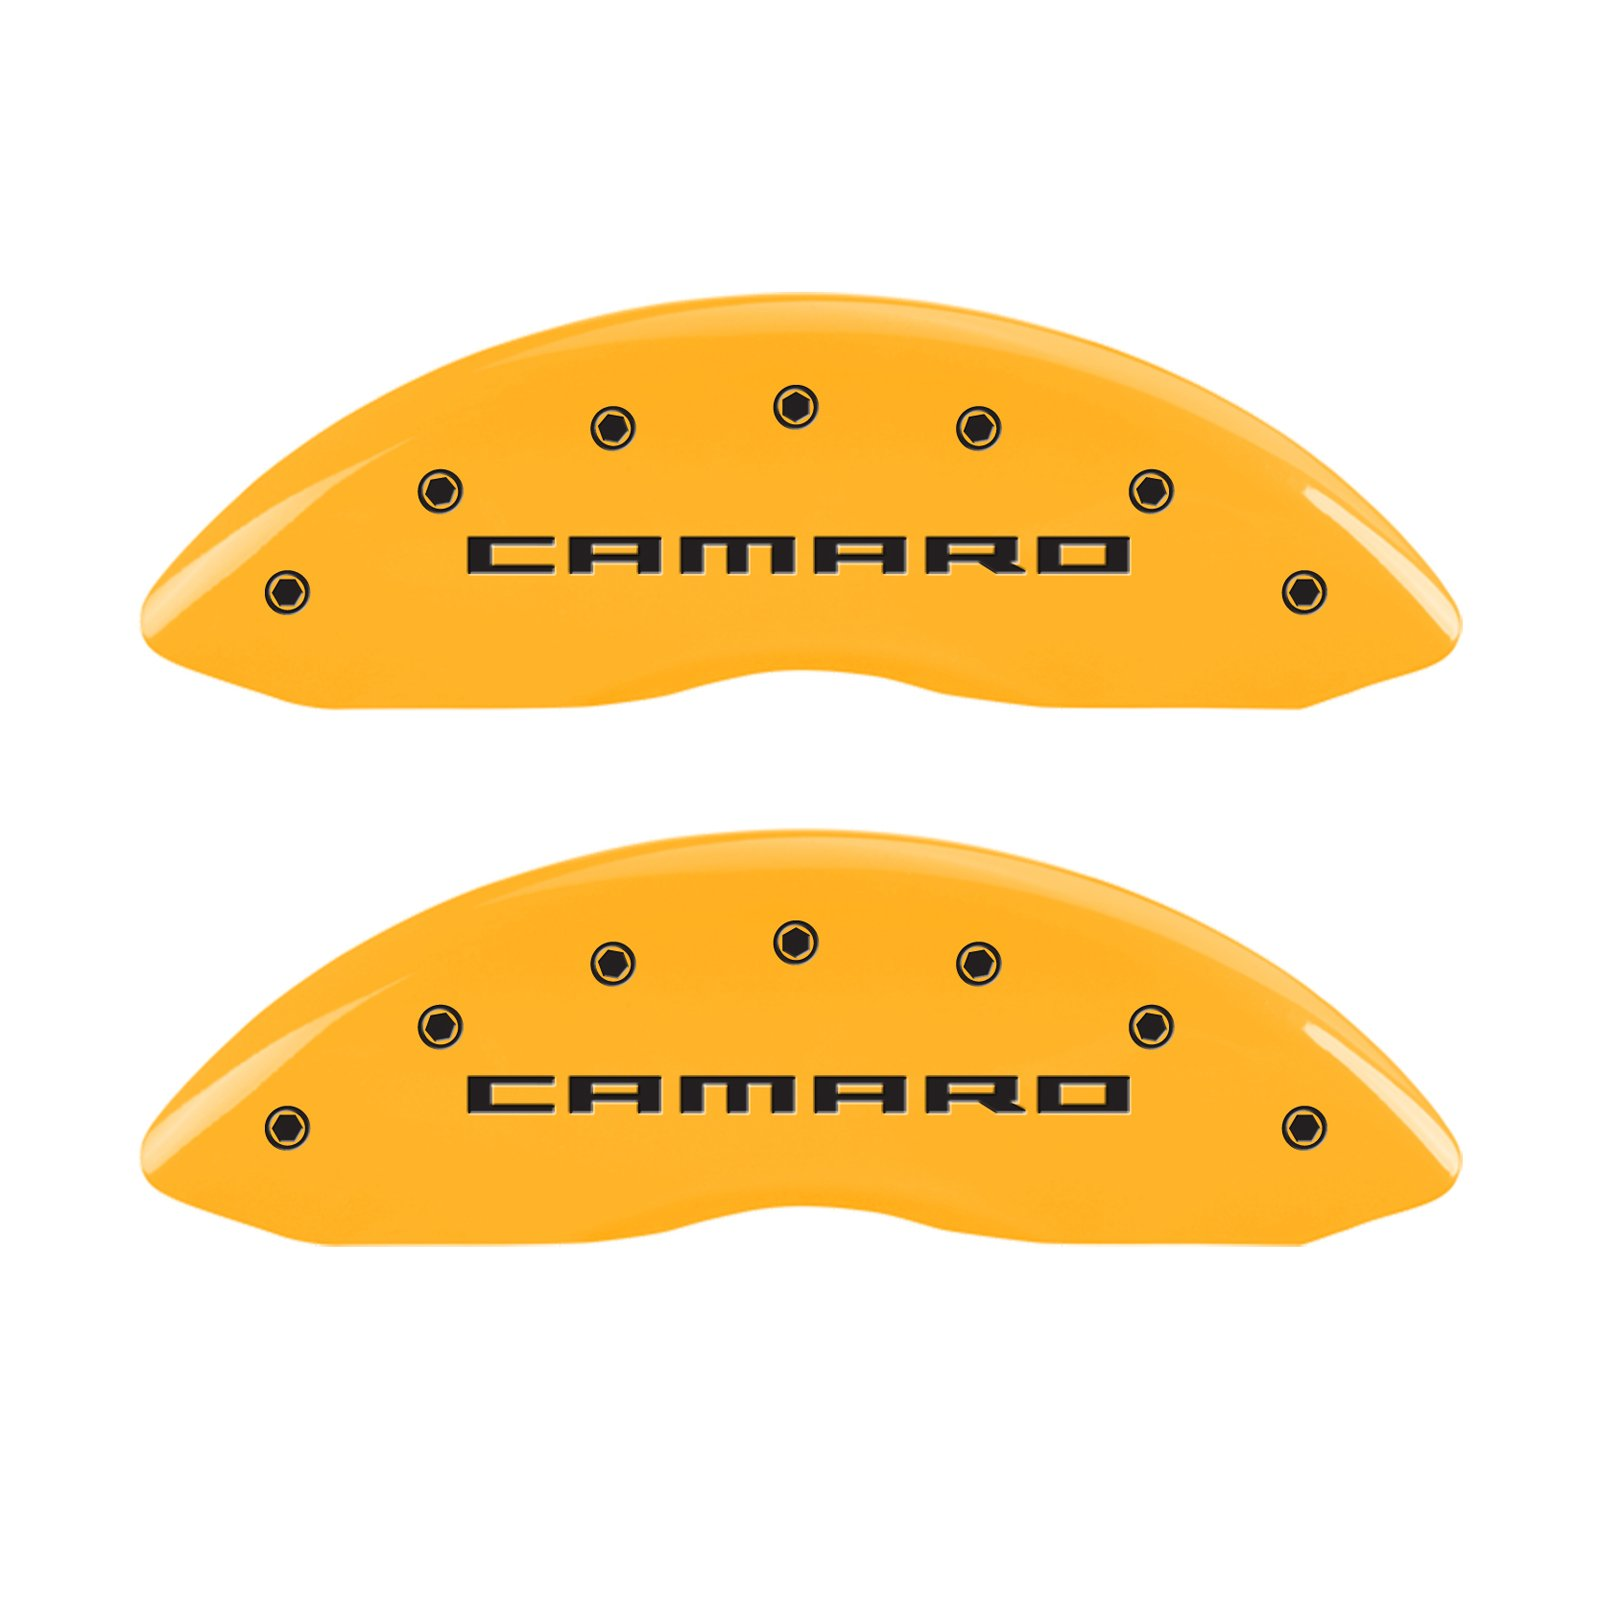 MGP Caliper Covers 14033SCA5YL Yellow Caliper Cover (Set of 4, Engraved Front and Rear: Gen 5/Camaro, Yellow powder coat finish, black characters) by MGP Caliper Covers